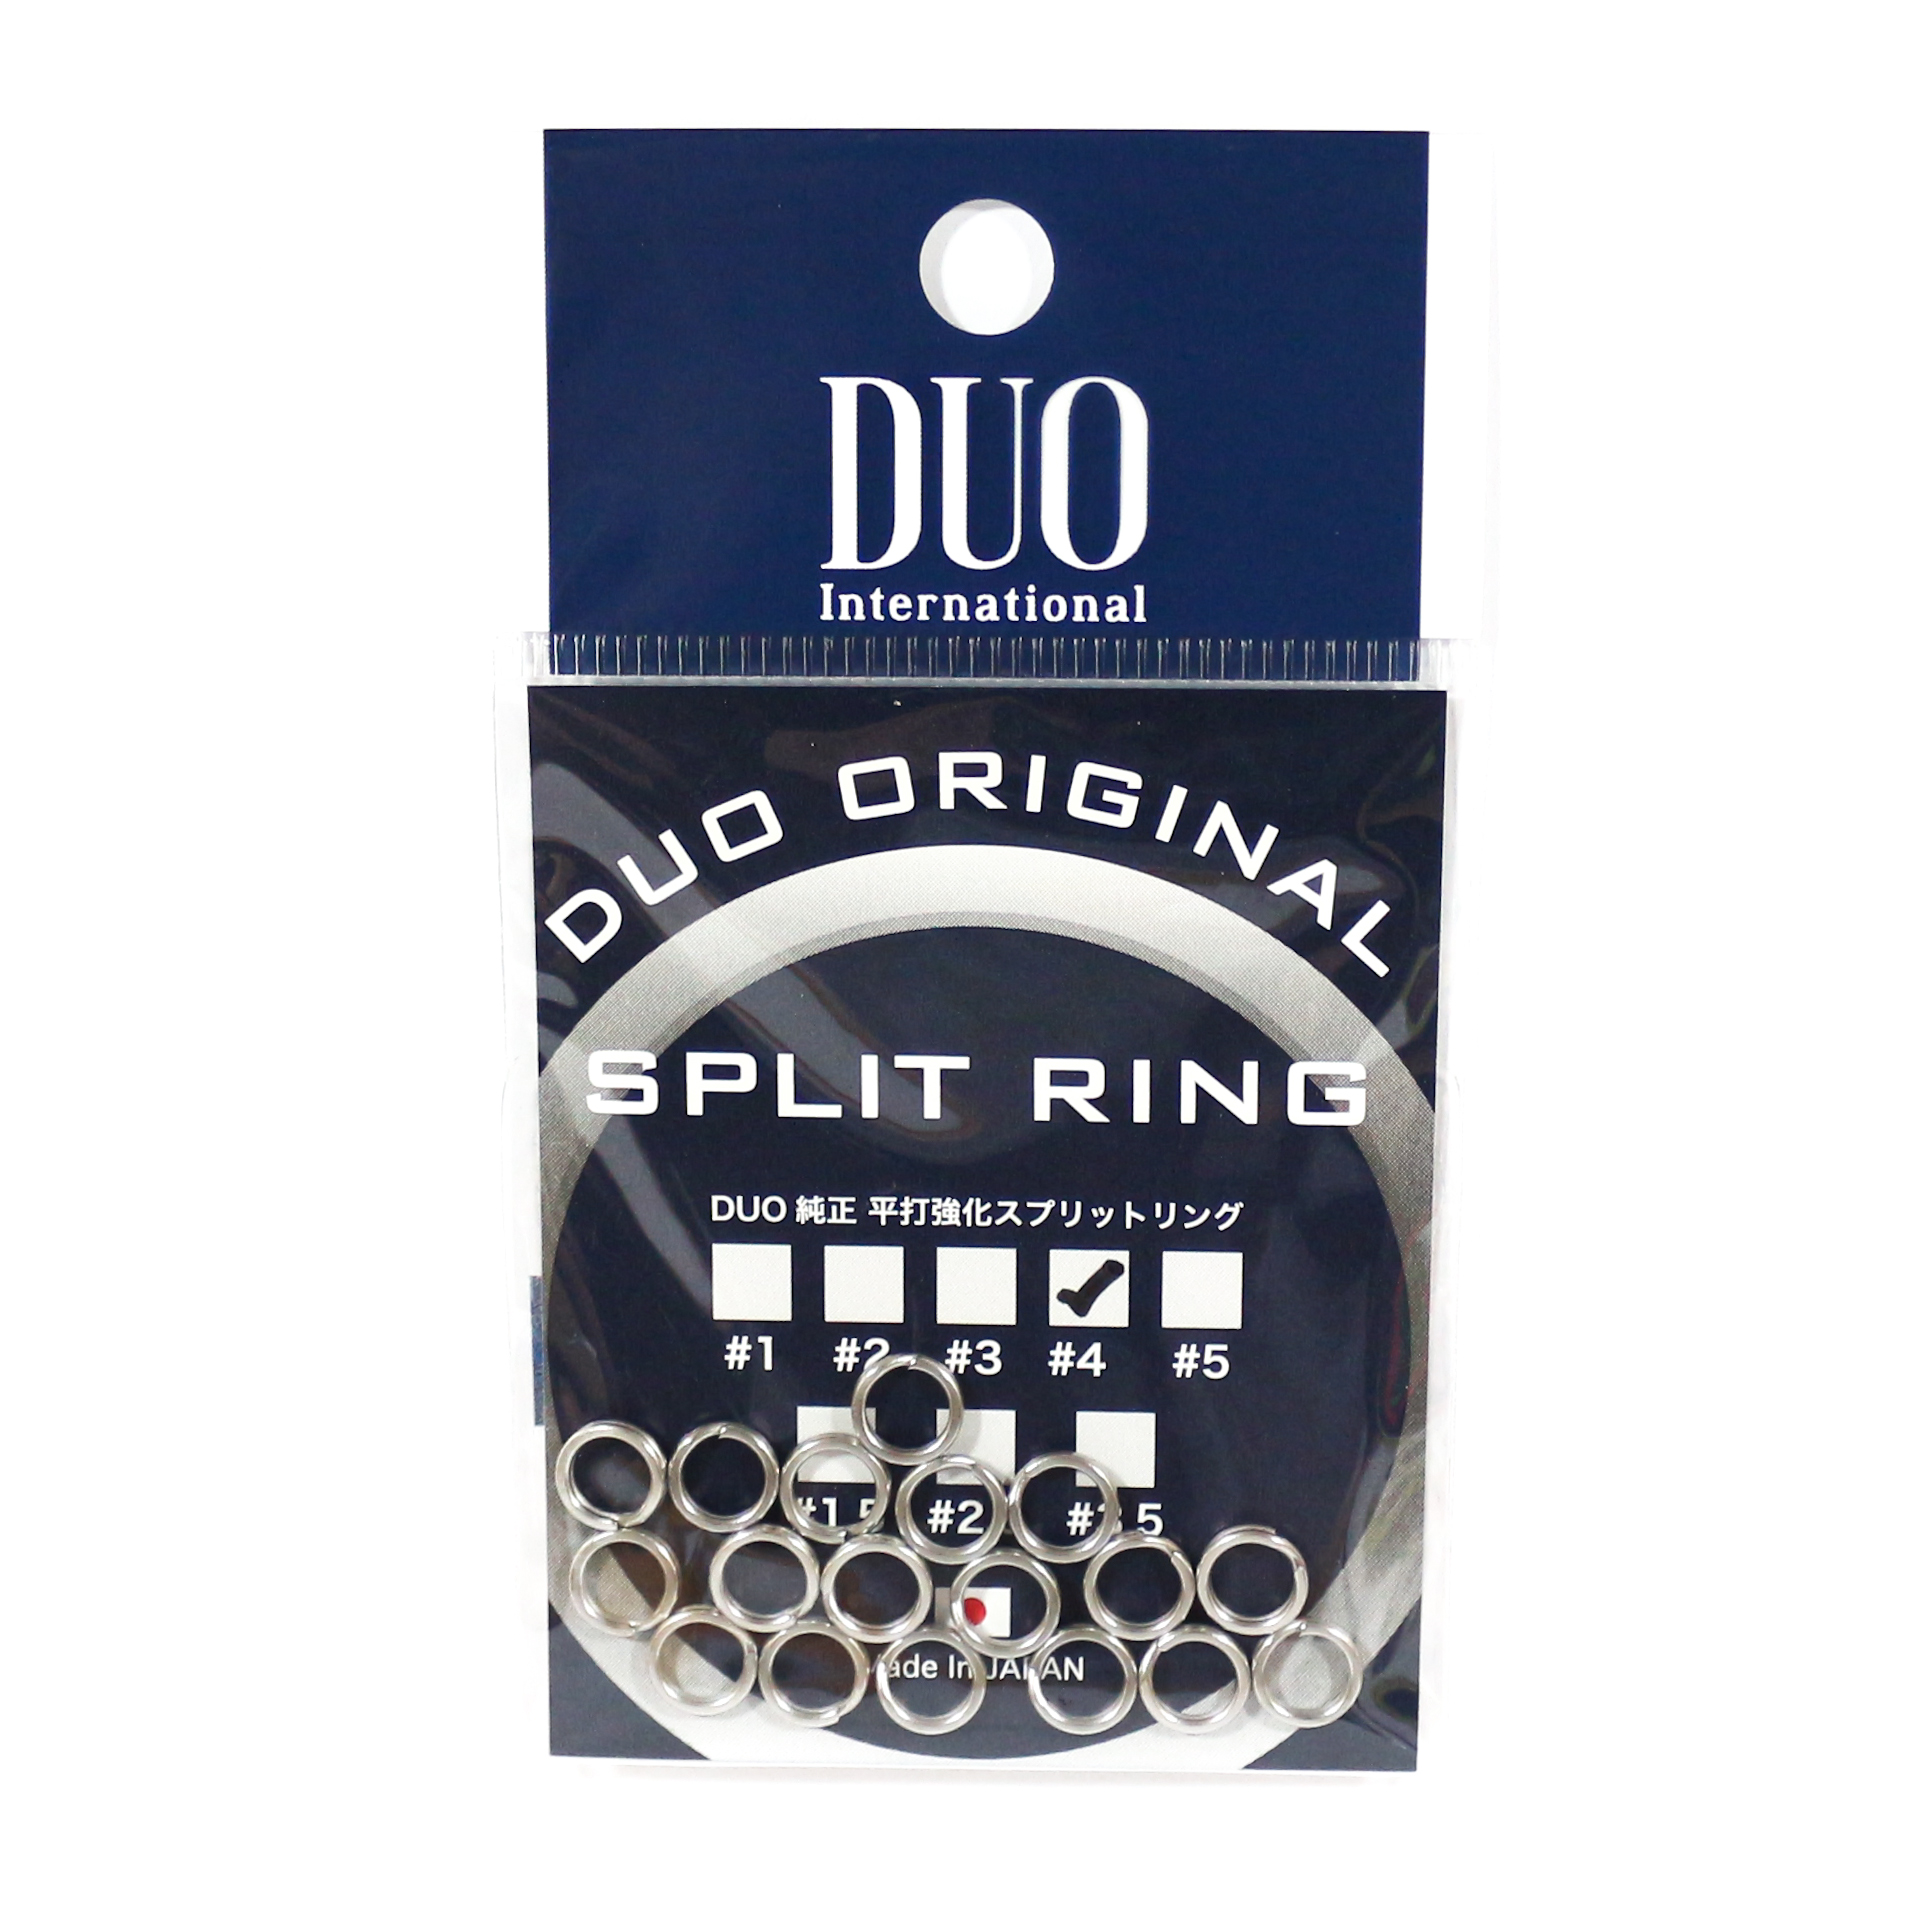 Duo Original Split Rings 18 pieces, Size 4 #4 (7686)